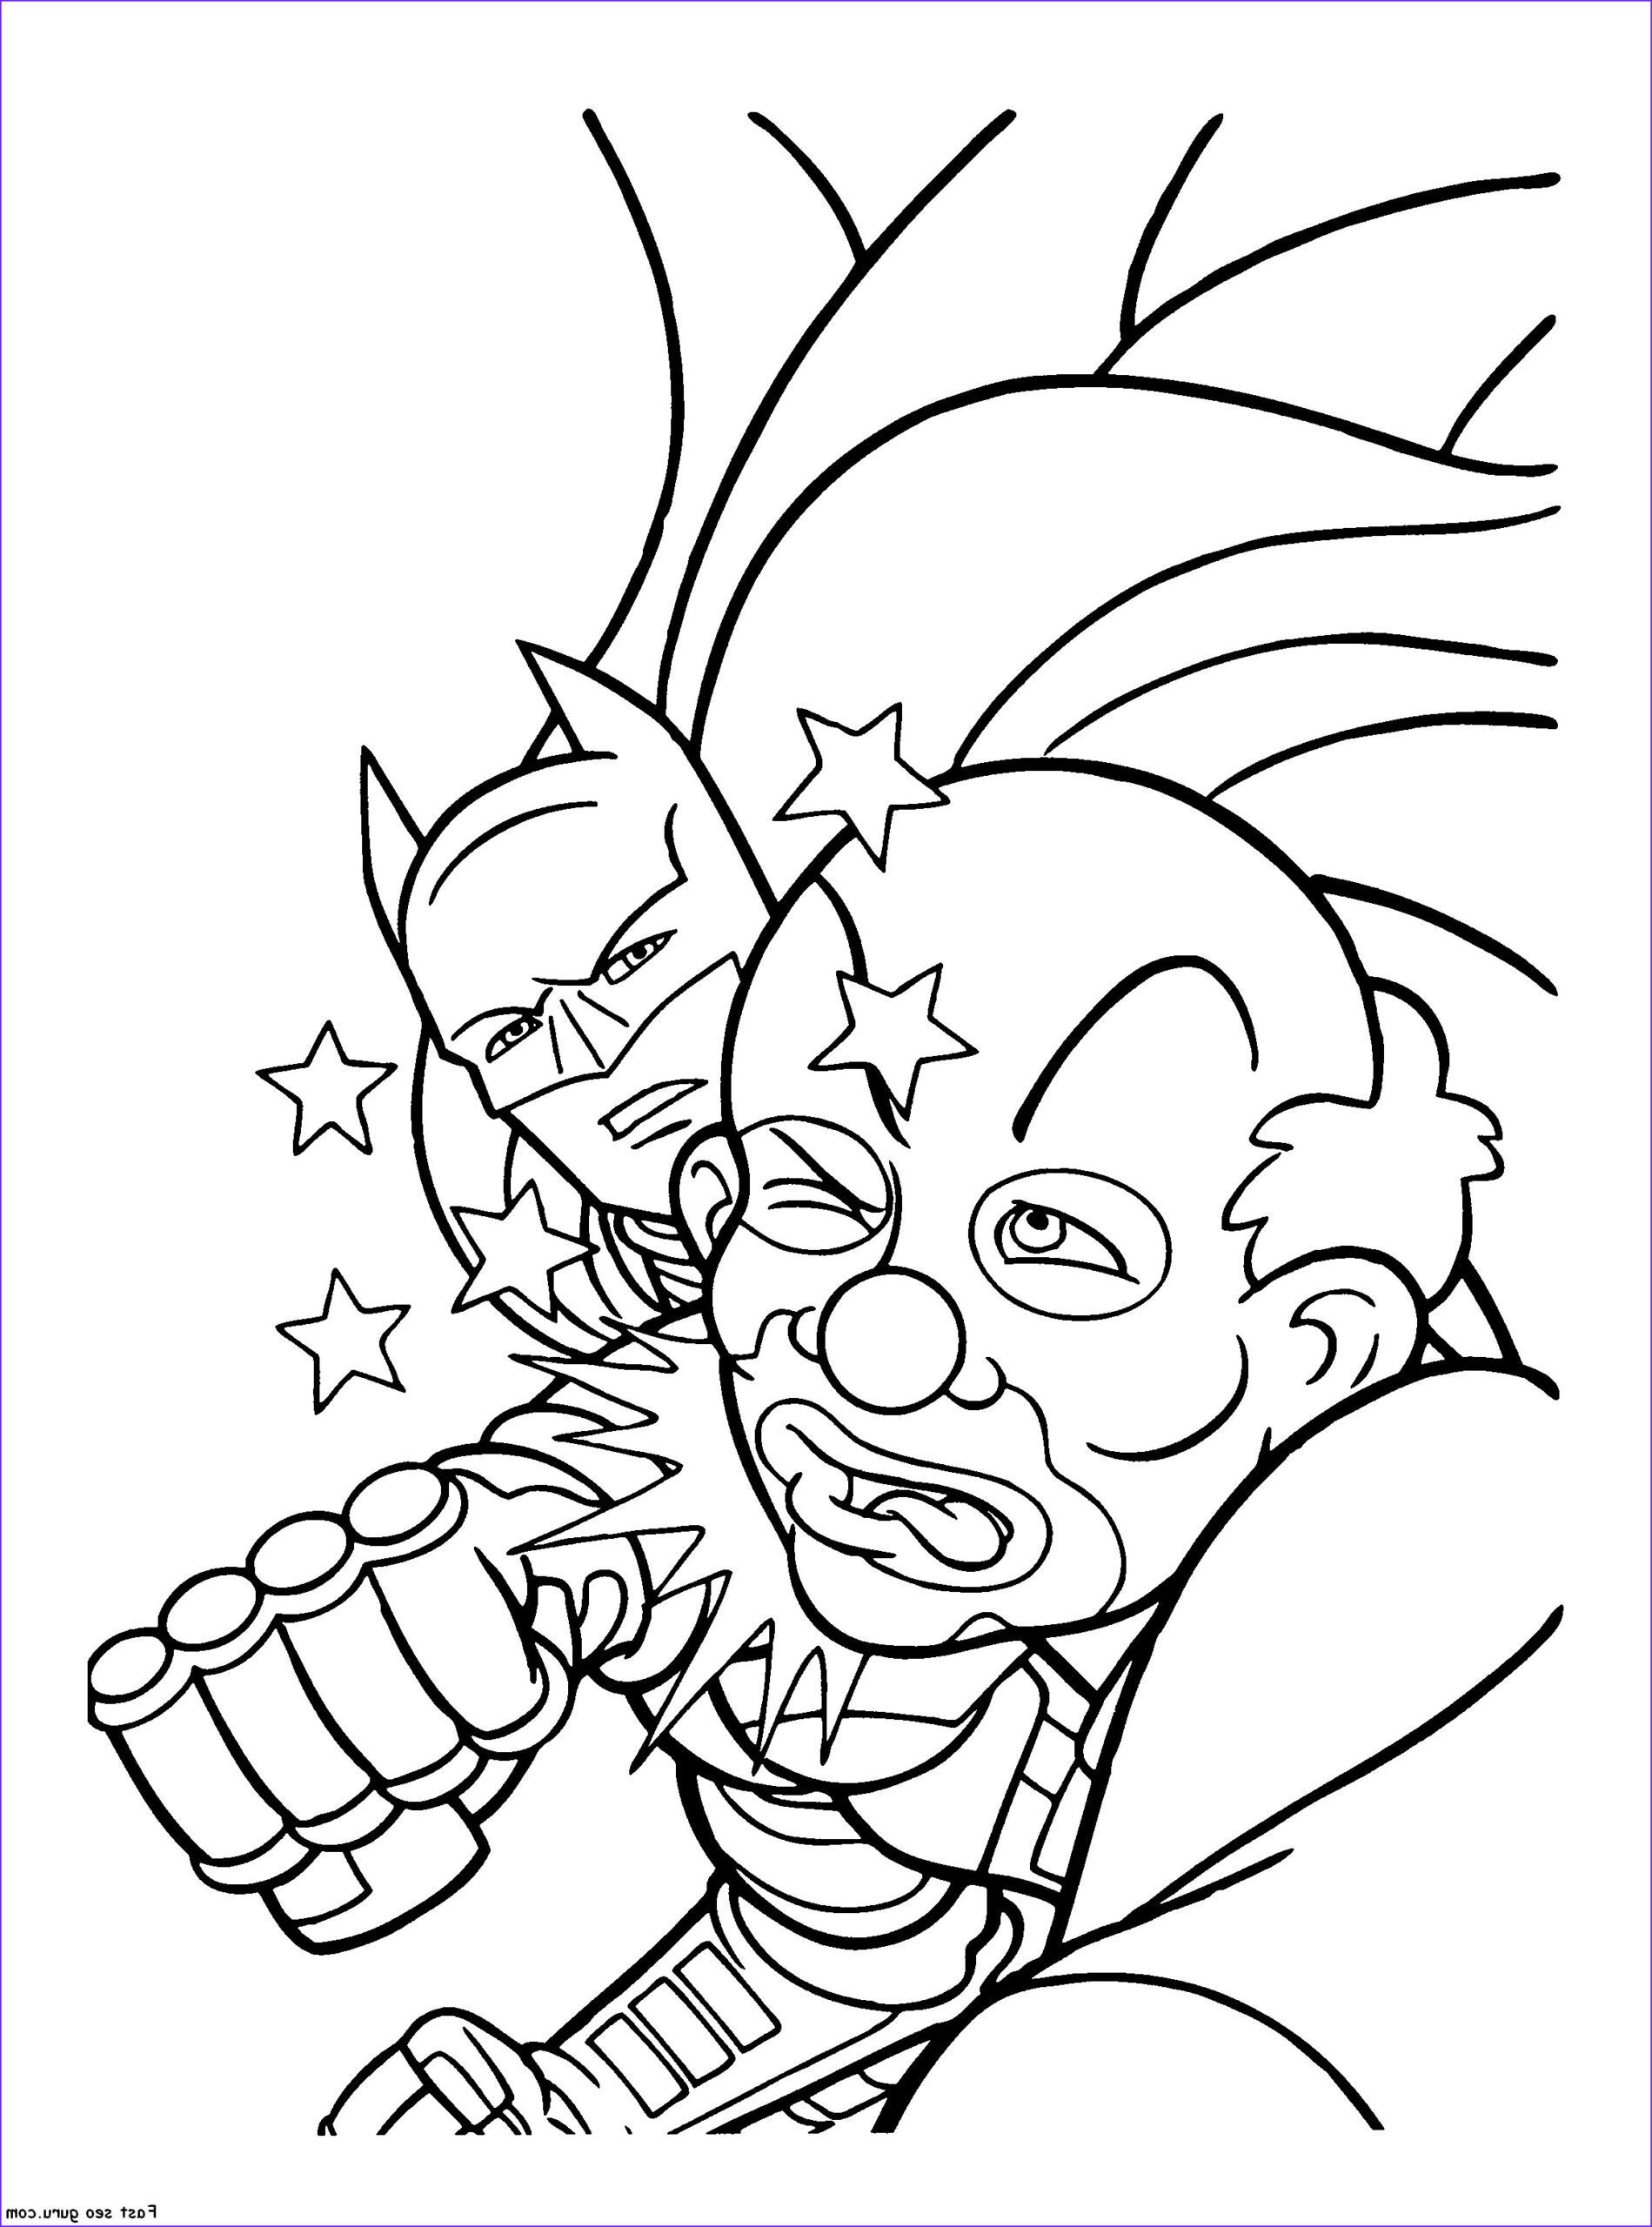 Printable Coloring Books Unique Image Joker Coloring Pages to and Print for Free